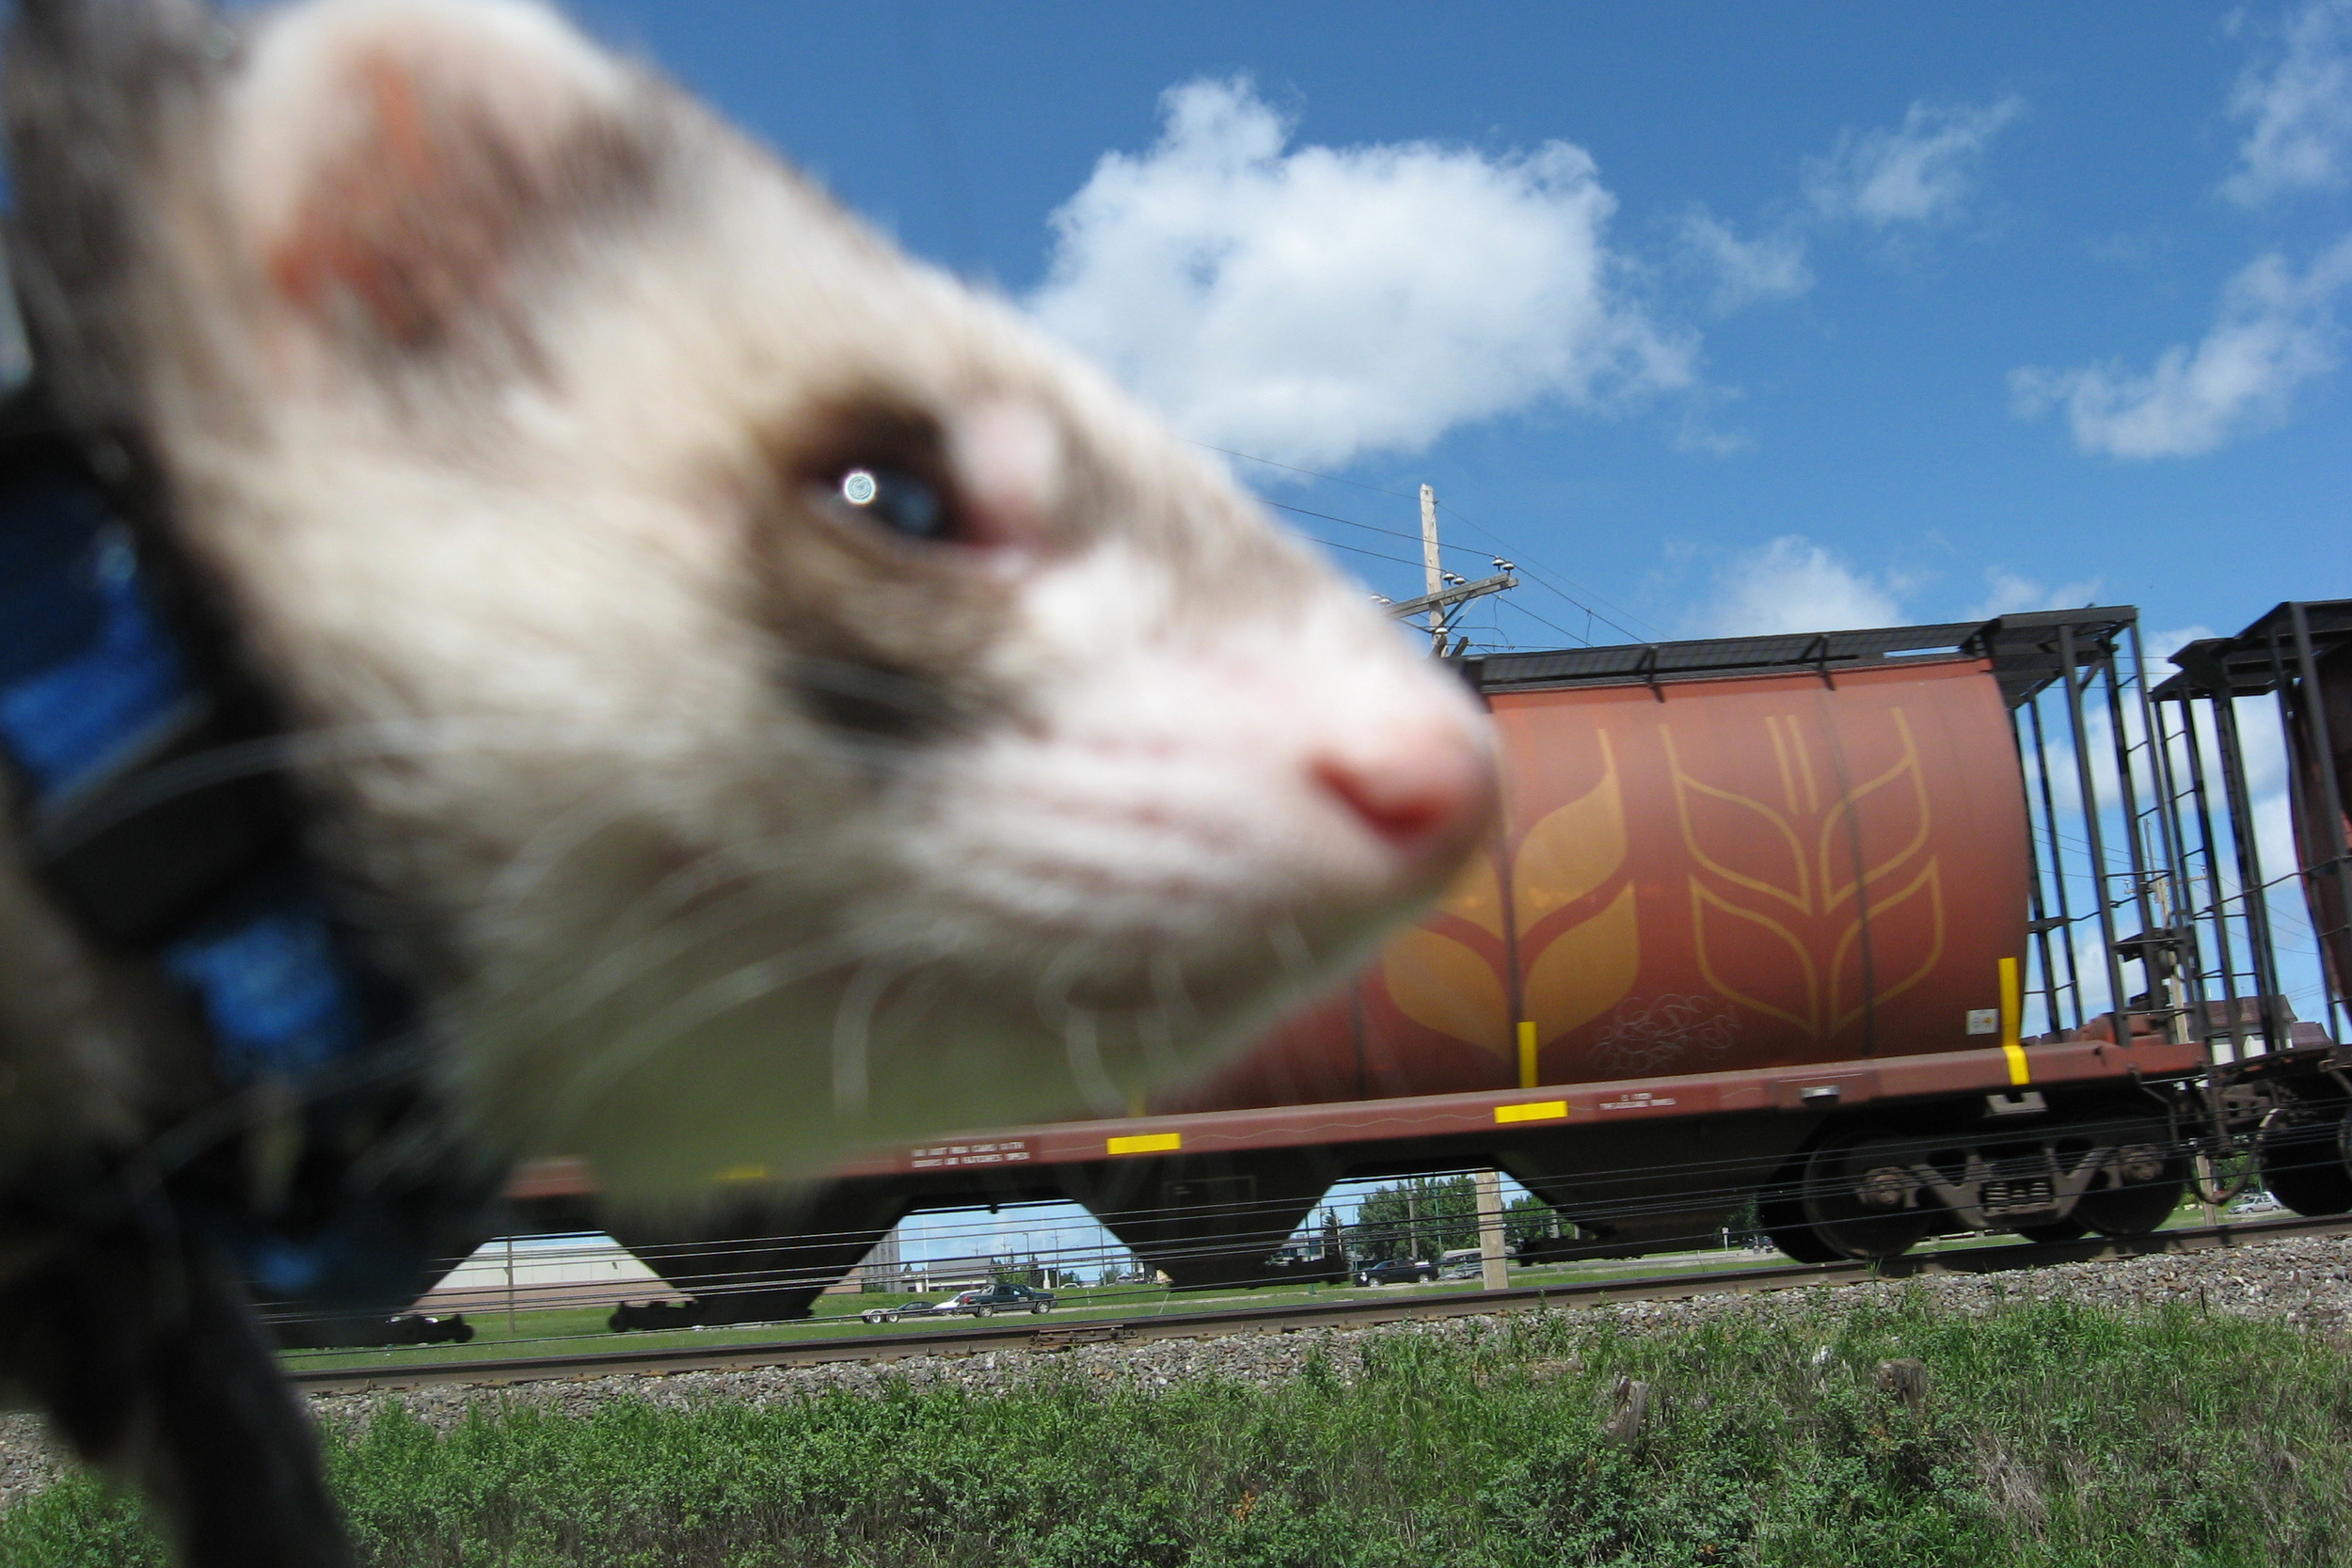 Duke was not happy to return to the train scene for this picture. If you have not read his book yet, you will have to buy a copy from the shop tofind out why.